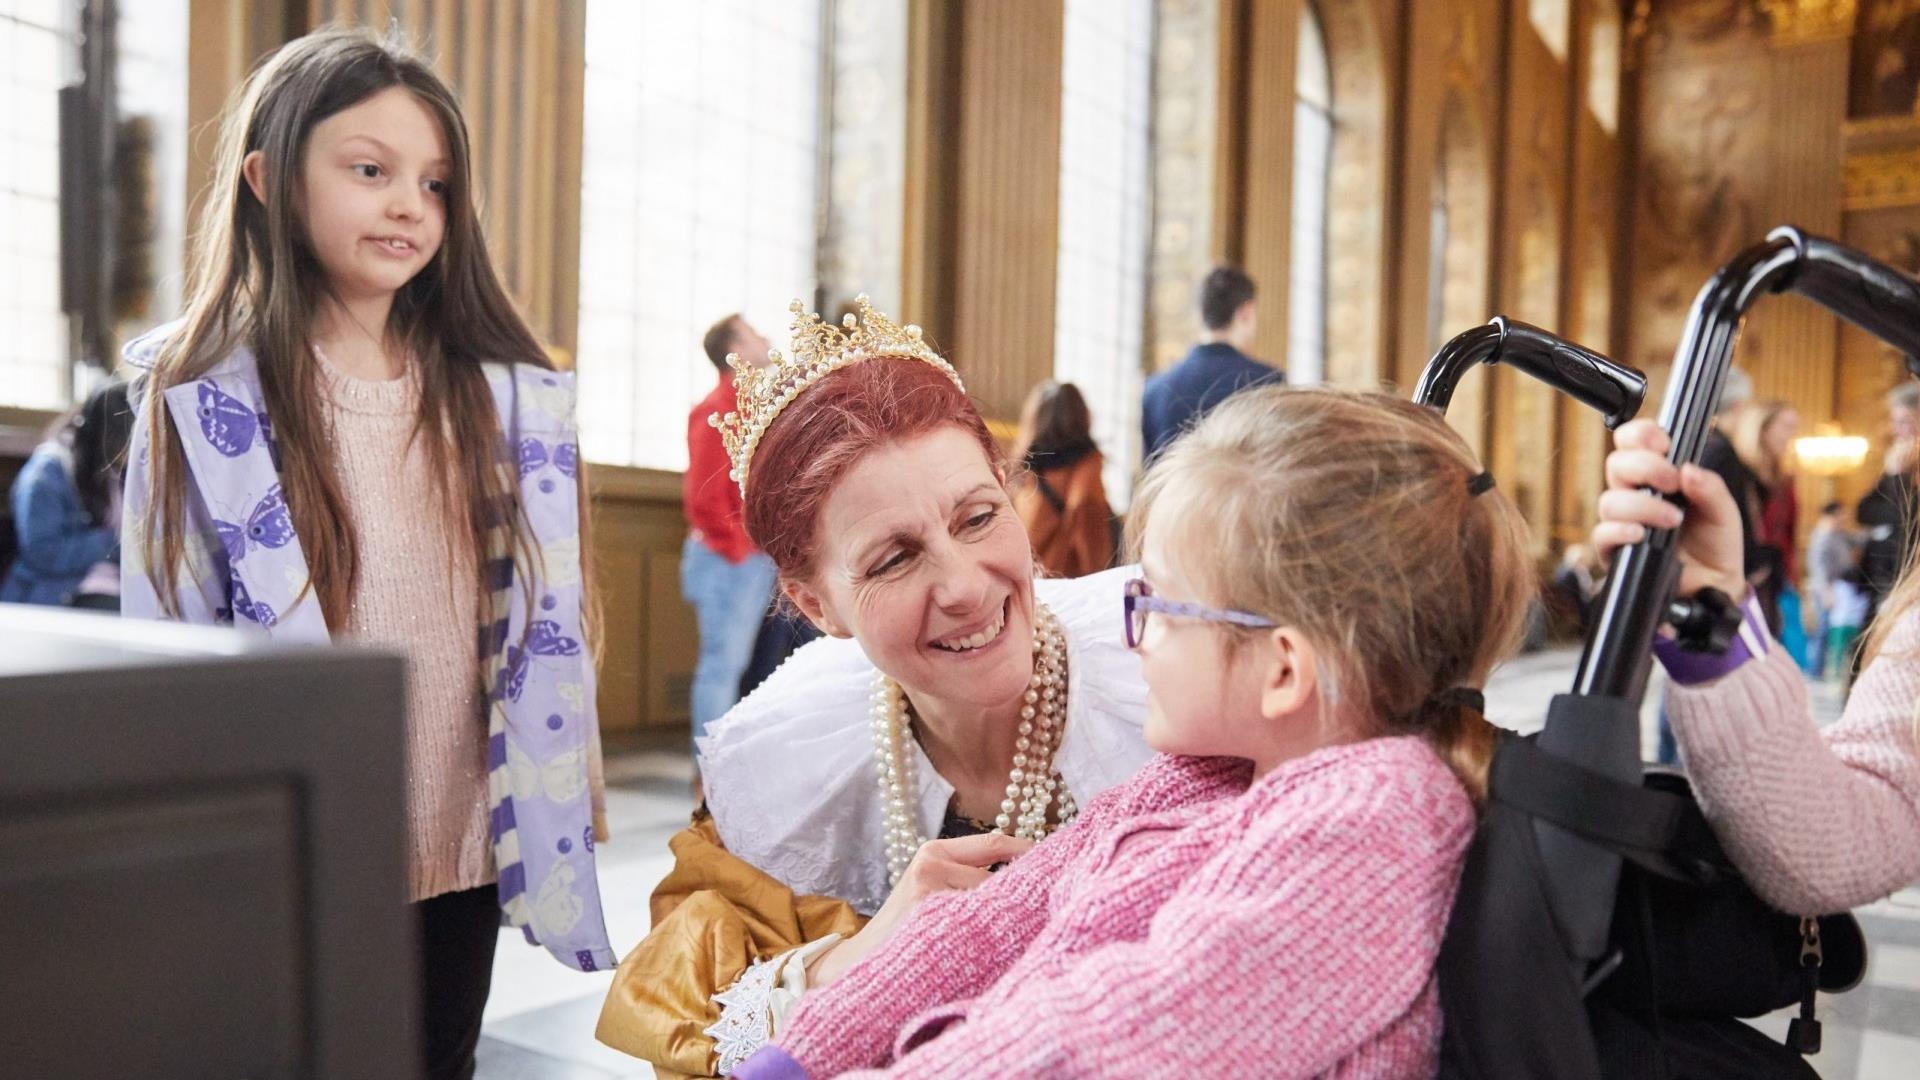 A young girl in a wheelchair is greeted by staff at the Painted Hall at the Old Royal Naval College in Greenwich.